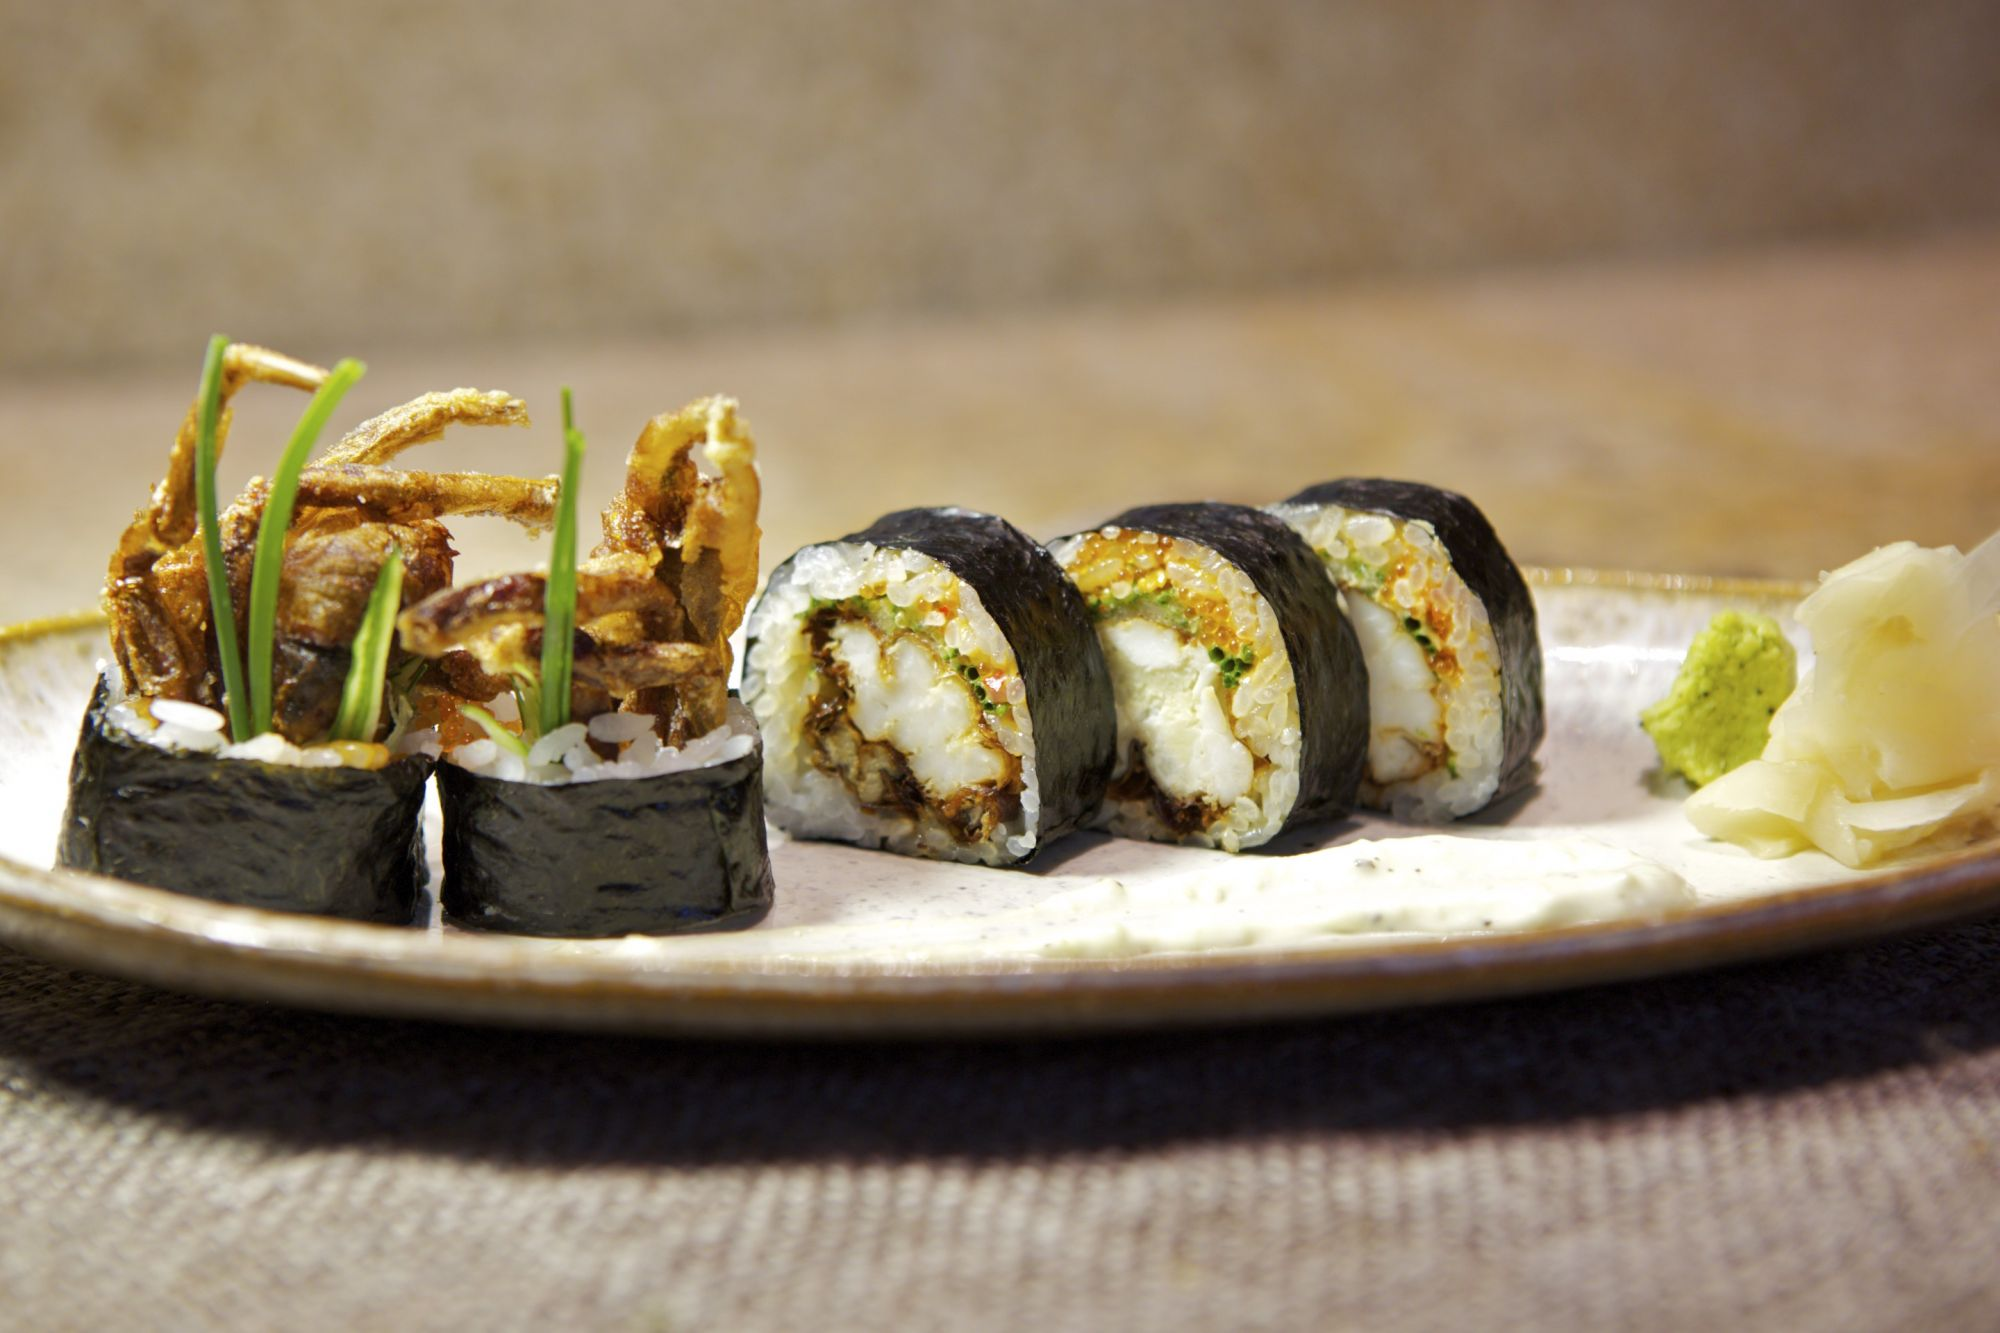 The Epicurean Express: Soft Shell Crab Roll